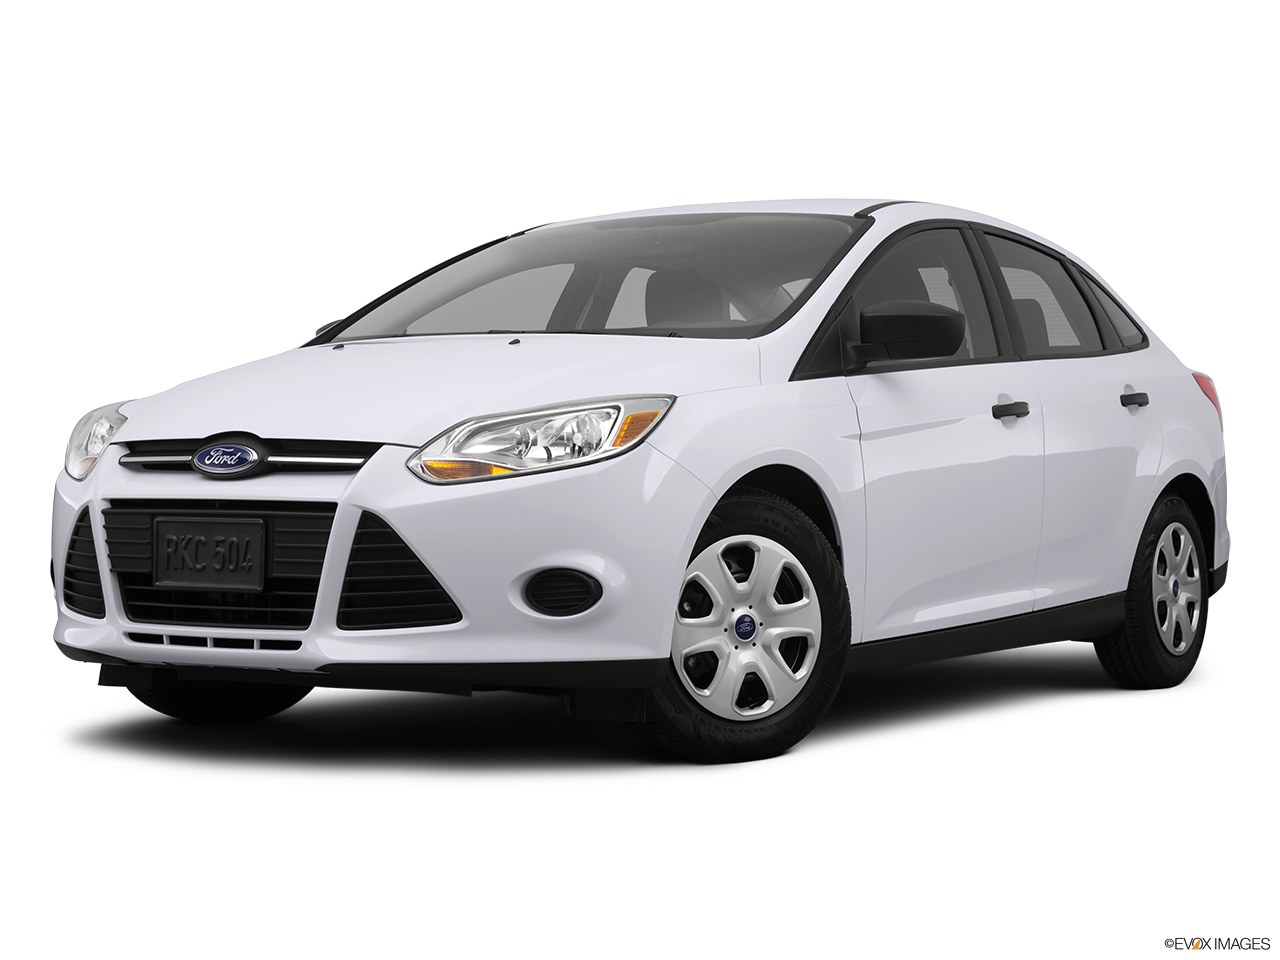 2012 ford focus vs 2012 mazda 3 which one should i buy. Black Bedroom Furniture Sets. Home Design Ideas